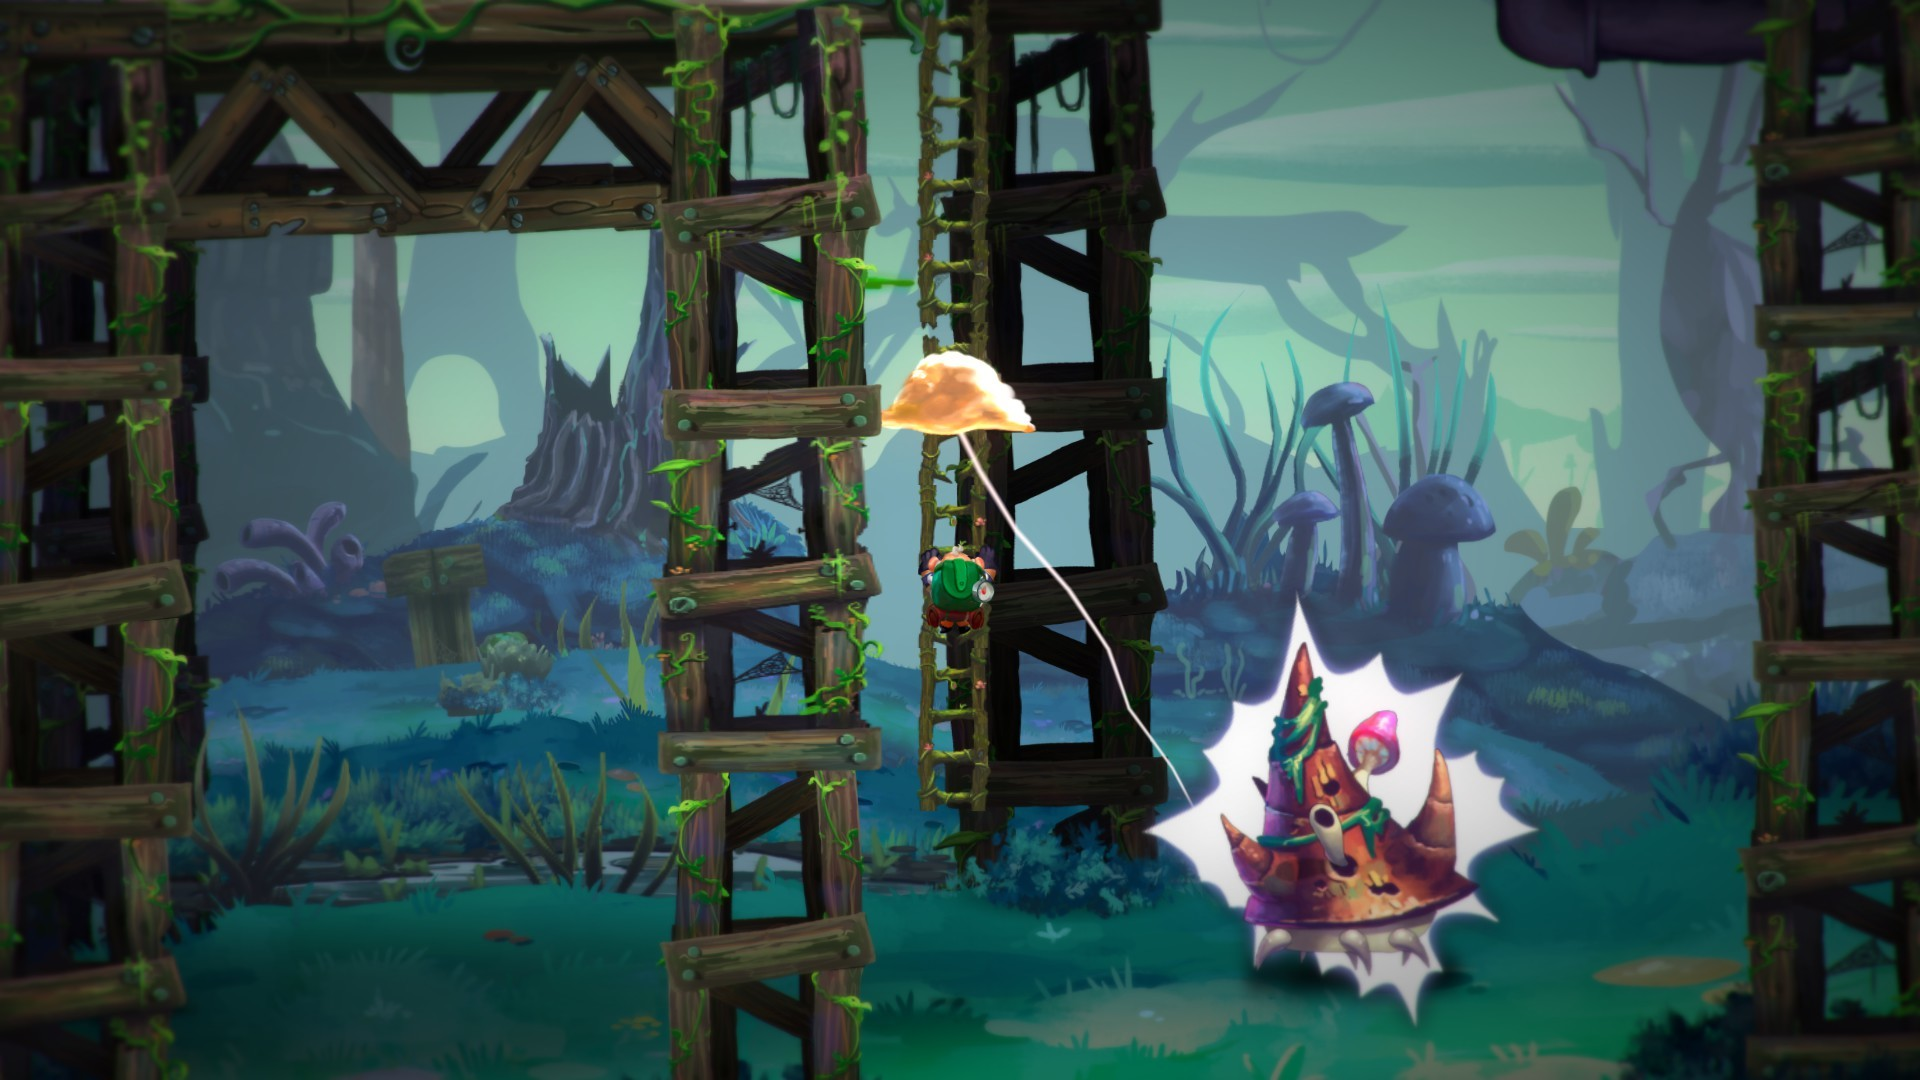 Grab Nubarron: The adventure of an unlucky gnome For Free on Steam